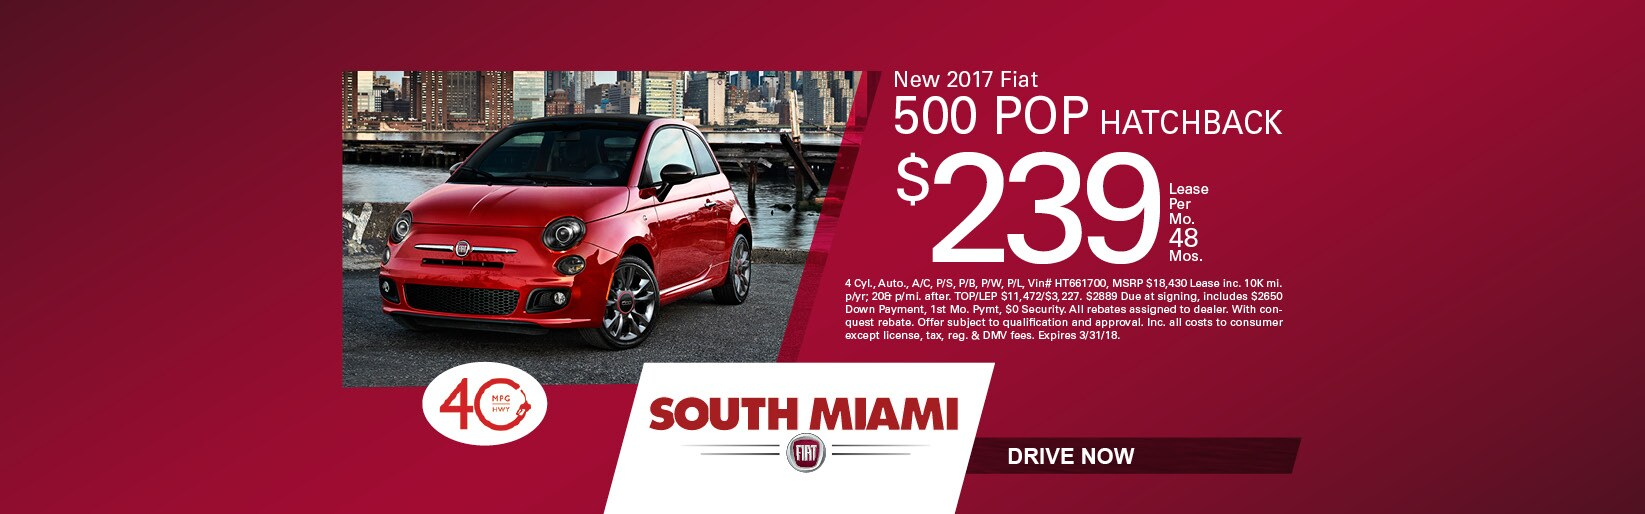 Miami FIAT Dealer South Miami FIAT Cars Serving Miami BeachFL - Fiat dealership michigan